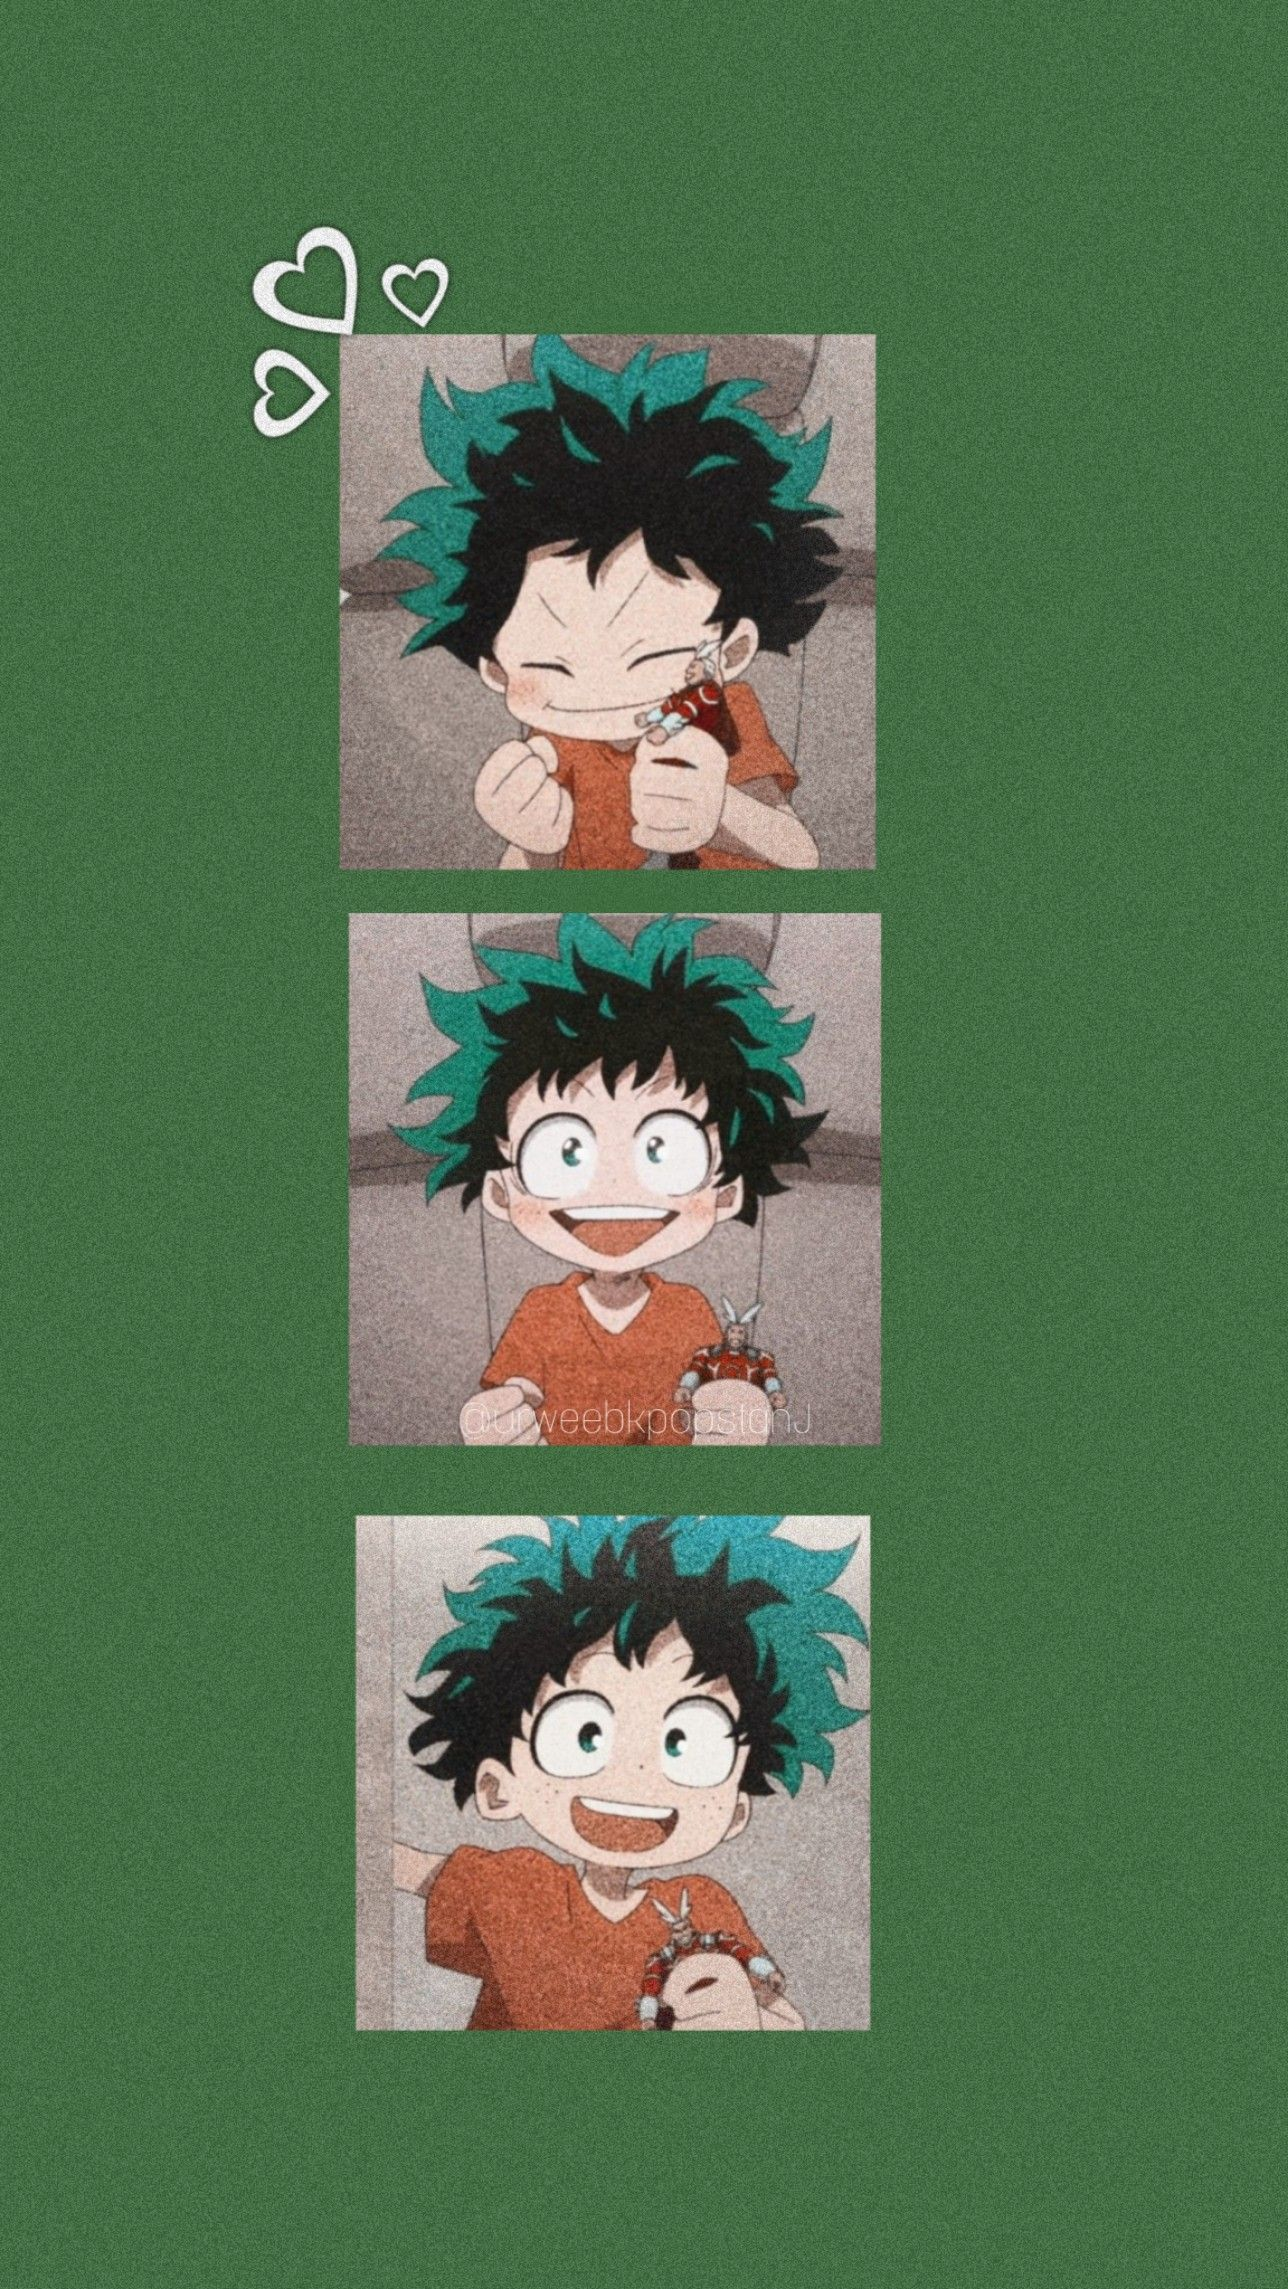 My Hero Academia Aesthetic Wallaper In 2020 Cute Anime Wallpaper